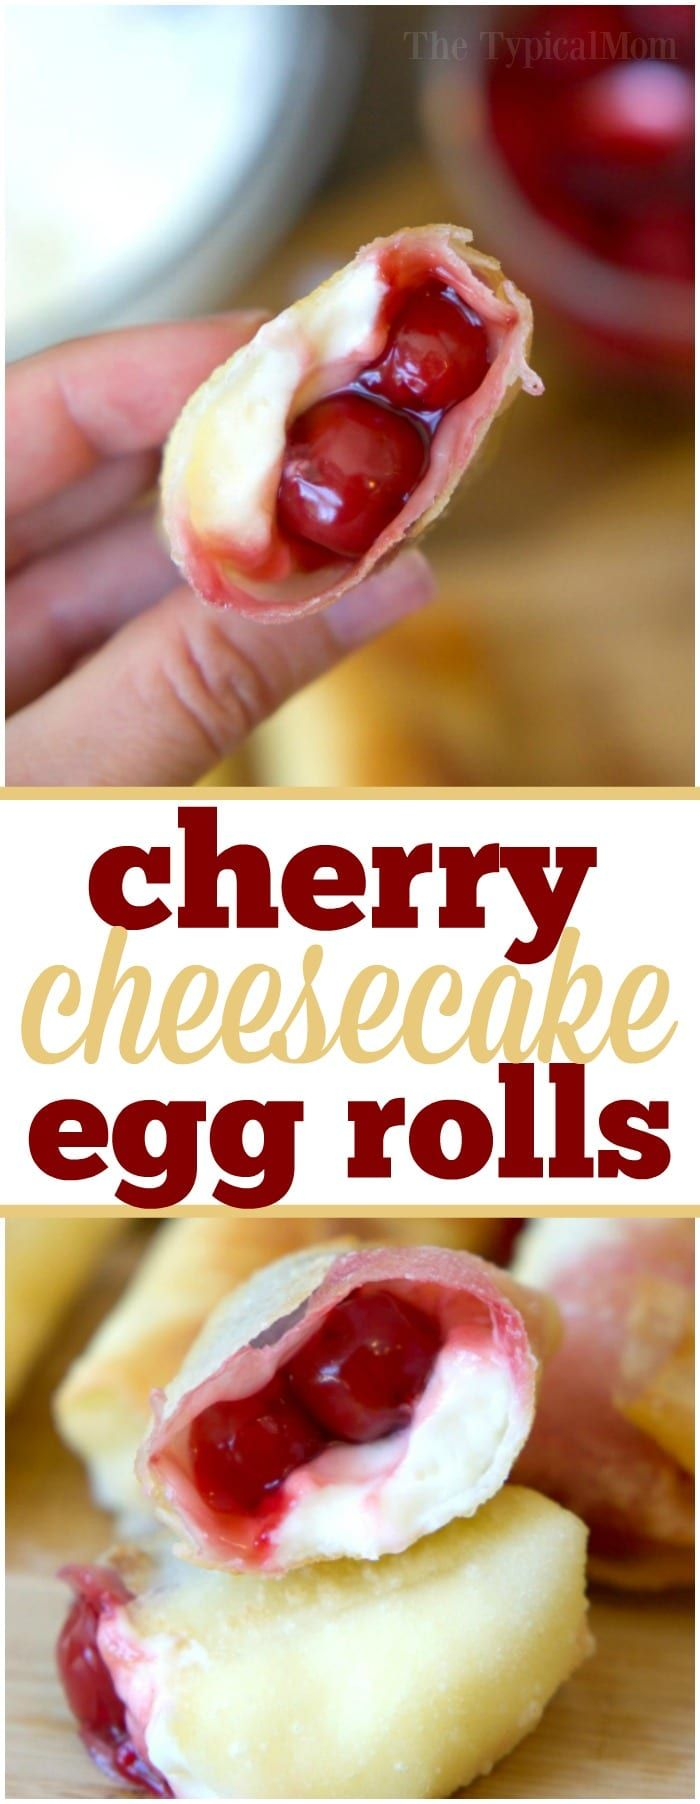 Cherry cheesecake egg rolls are amazing!! Just 3 ingredients in this warm dessert egg roll recipe. SO easy and the easiest cheesecake recipe ever. #cherrycheesecake #cheesecake #eggrolls #desserteggrolls #cherry #thetypicalmom  via @pinterest.com/thetypicalmom #eggrolls